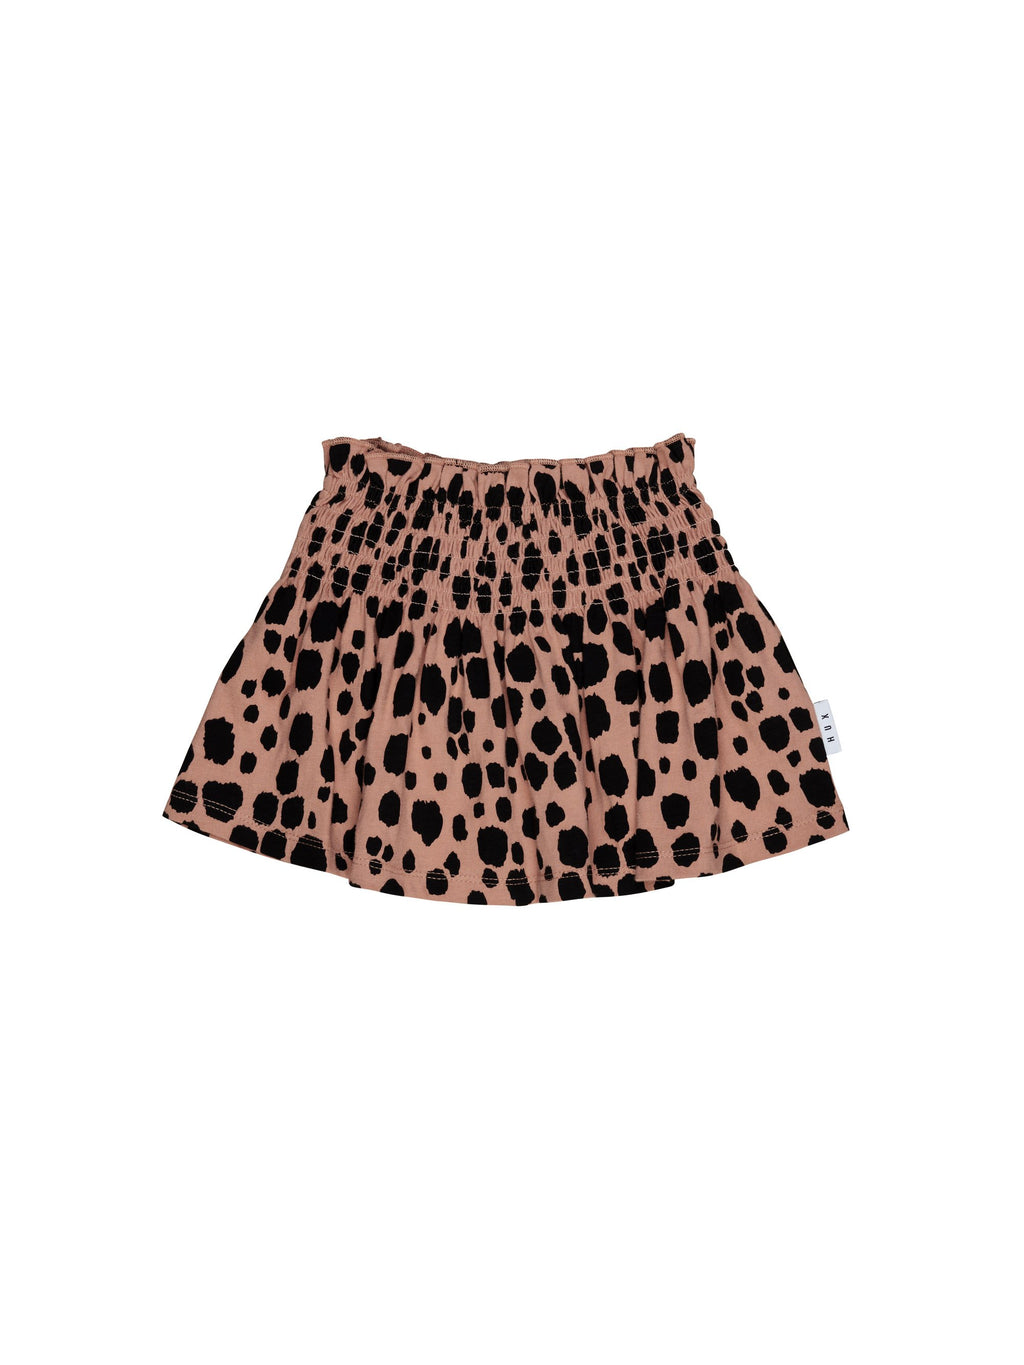 Huxbaby Shirred Skirt - HB1833